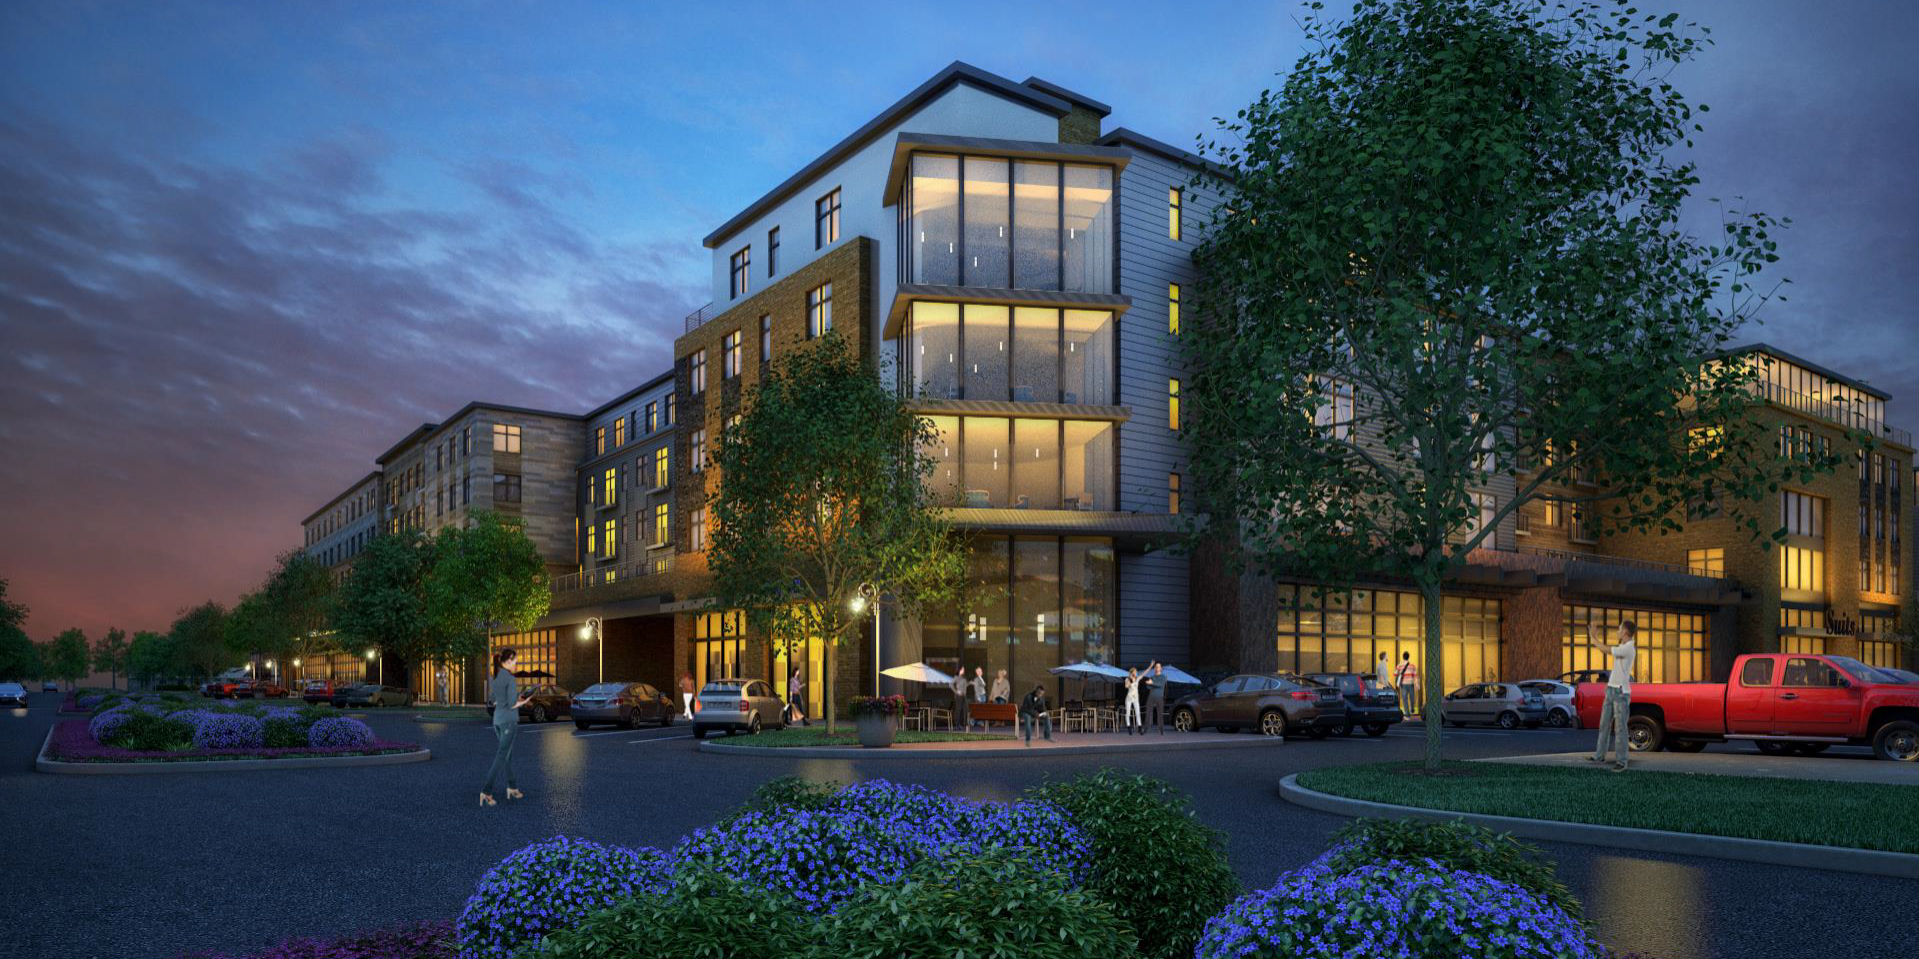 BET Investments' $150M Upper Dublin Project Ready to Move Forward